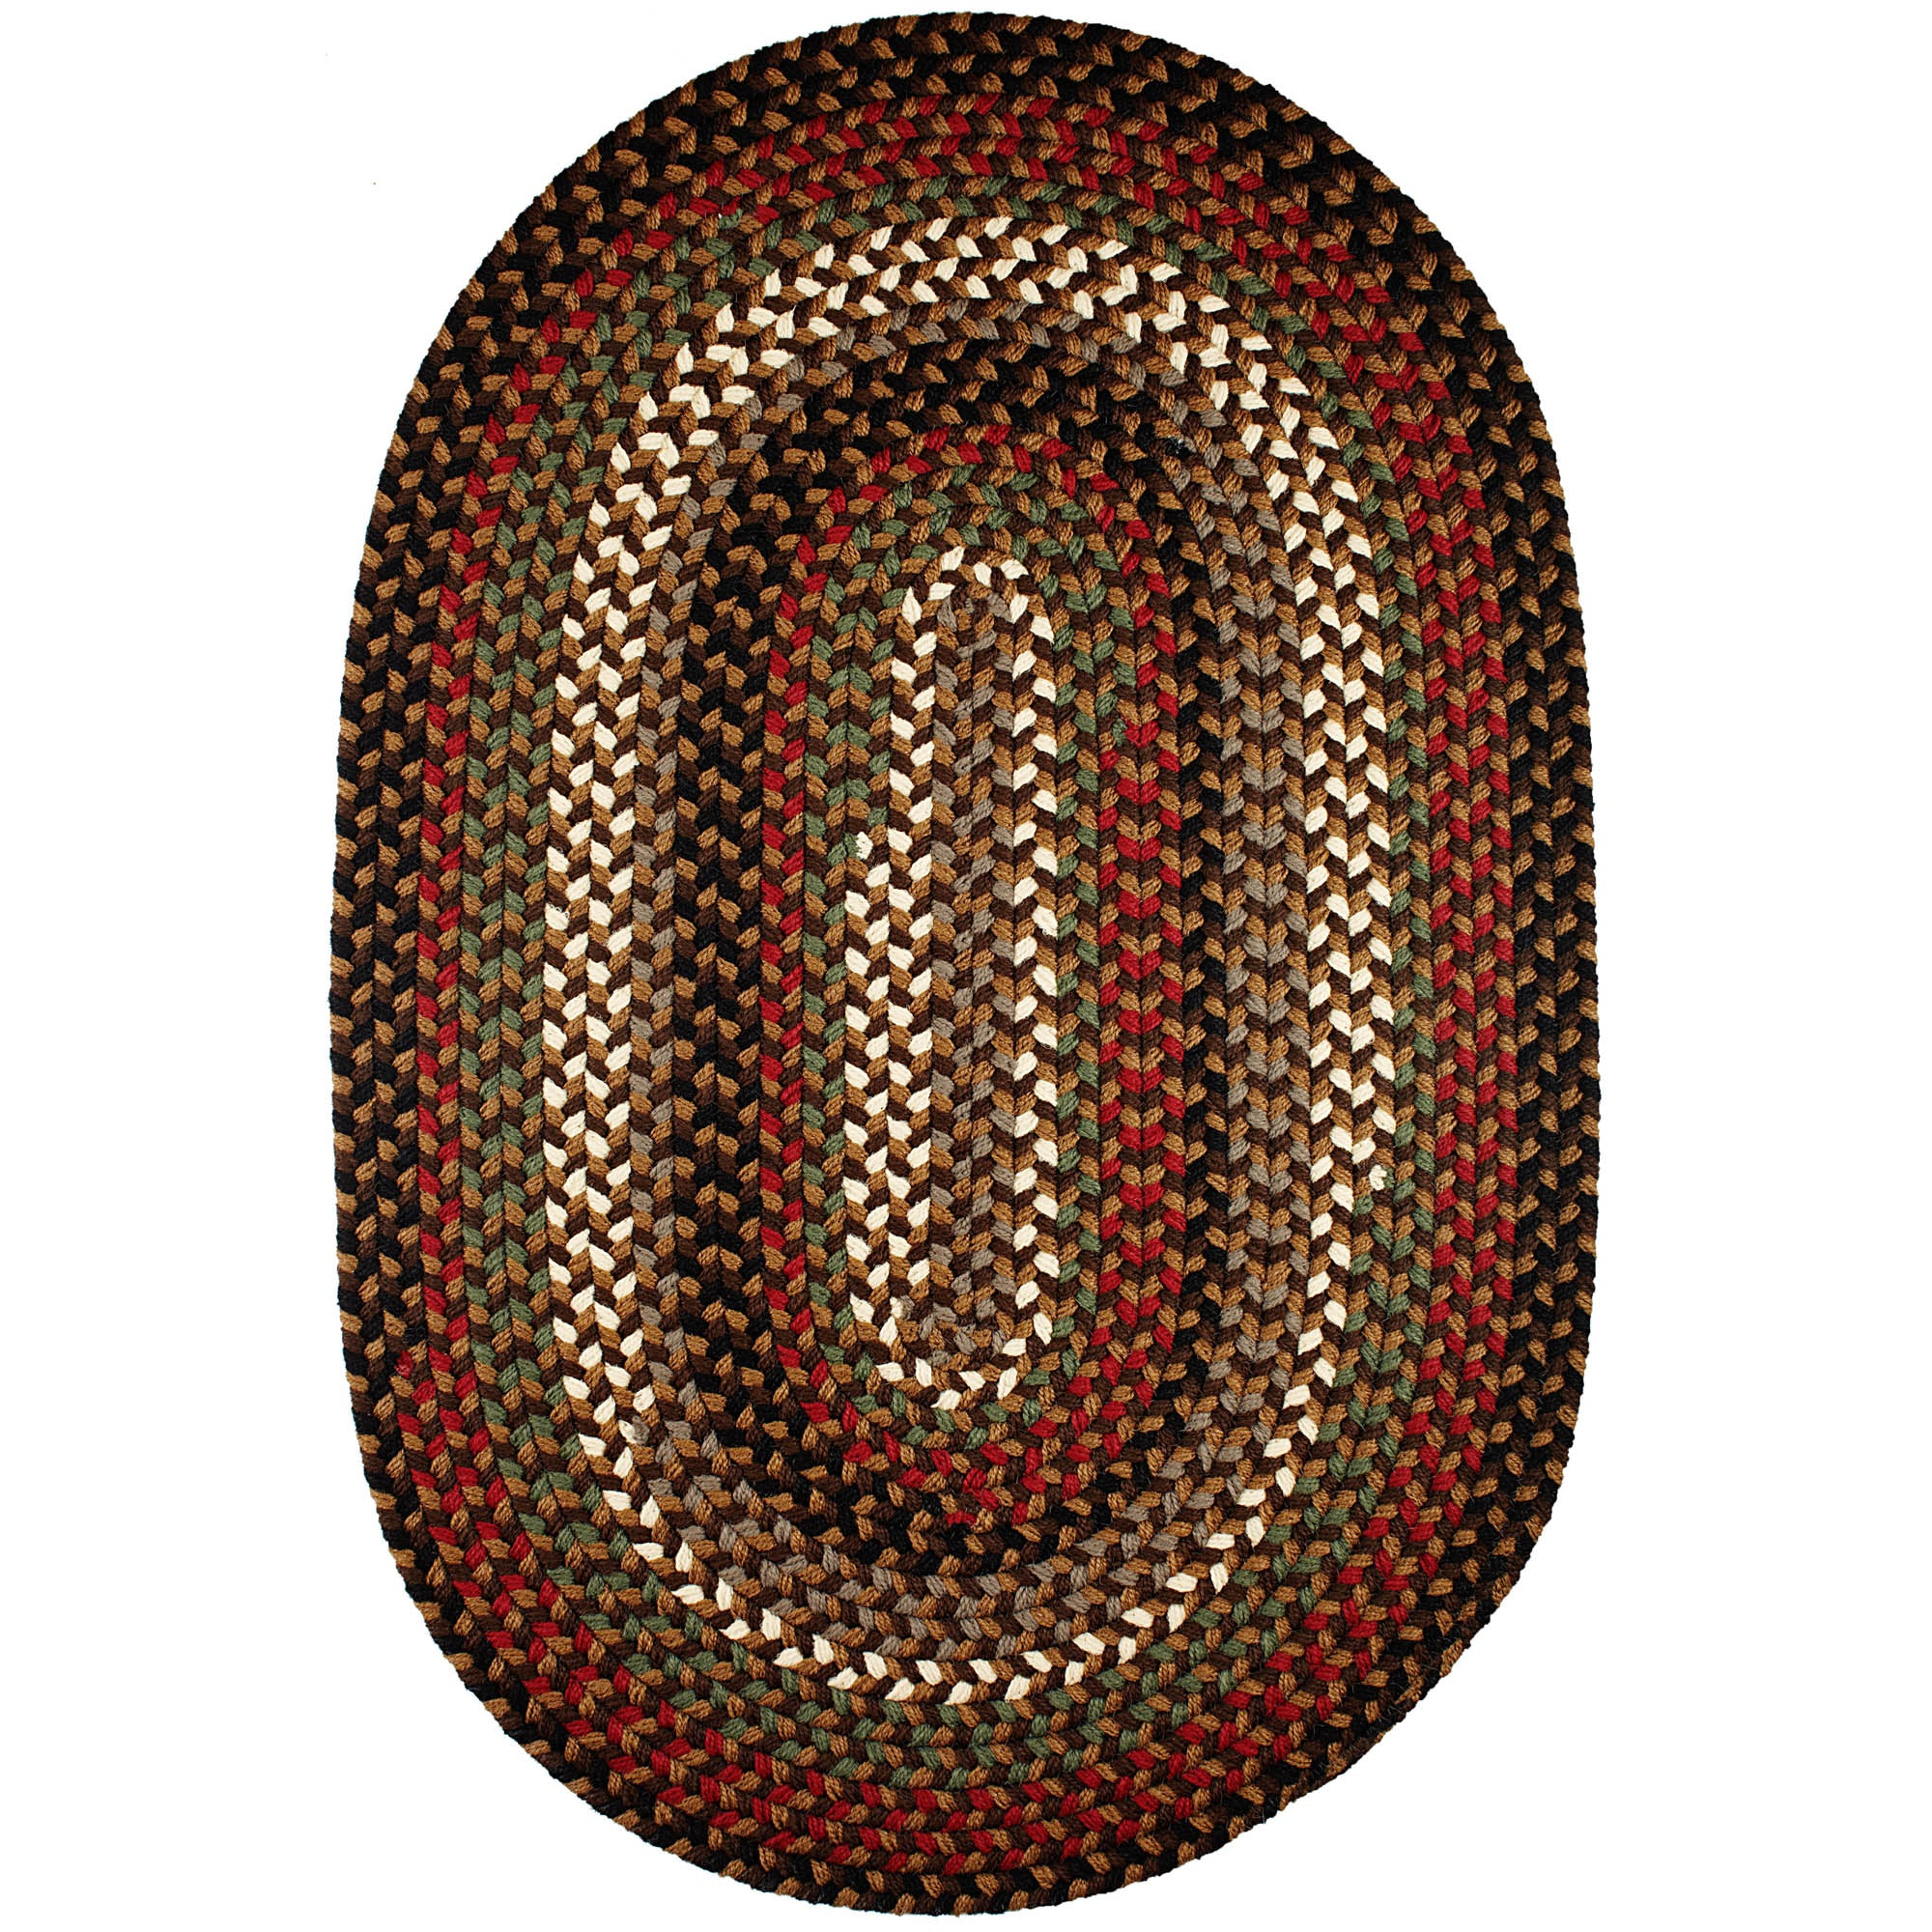 Santa Braided Area Rug in Brown Fudge